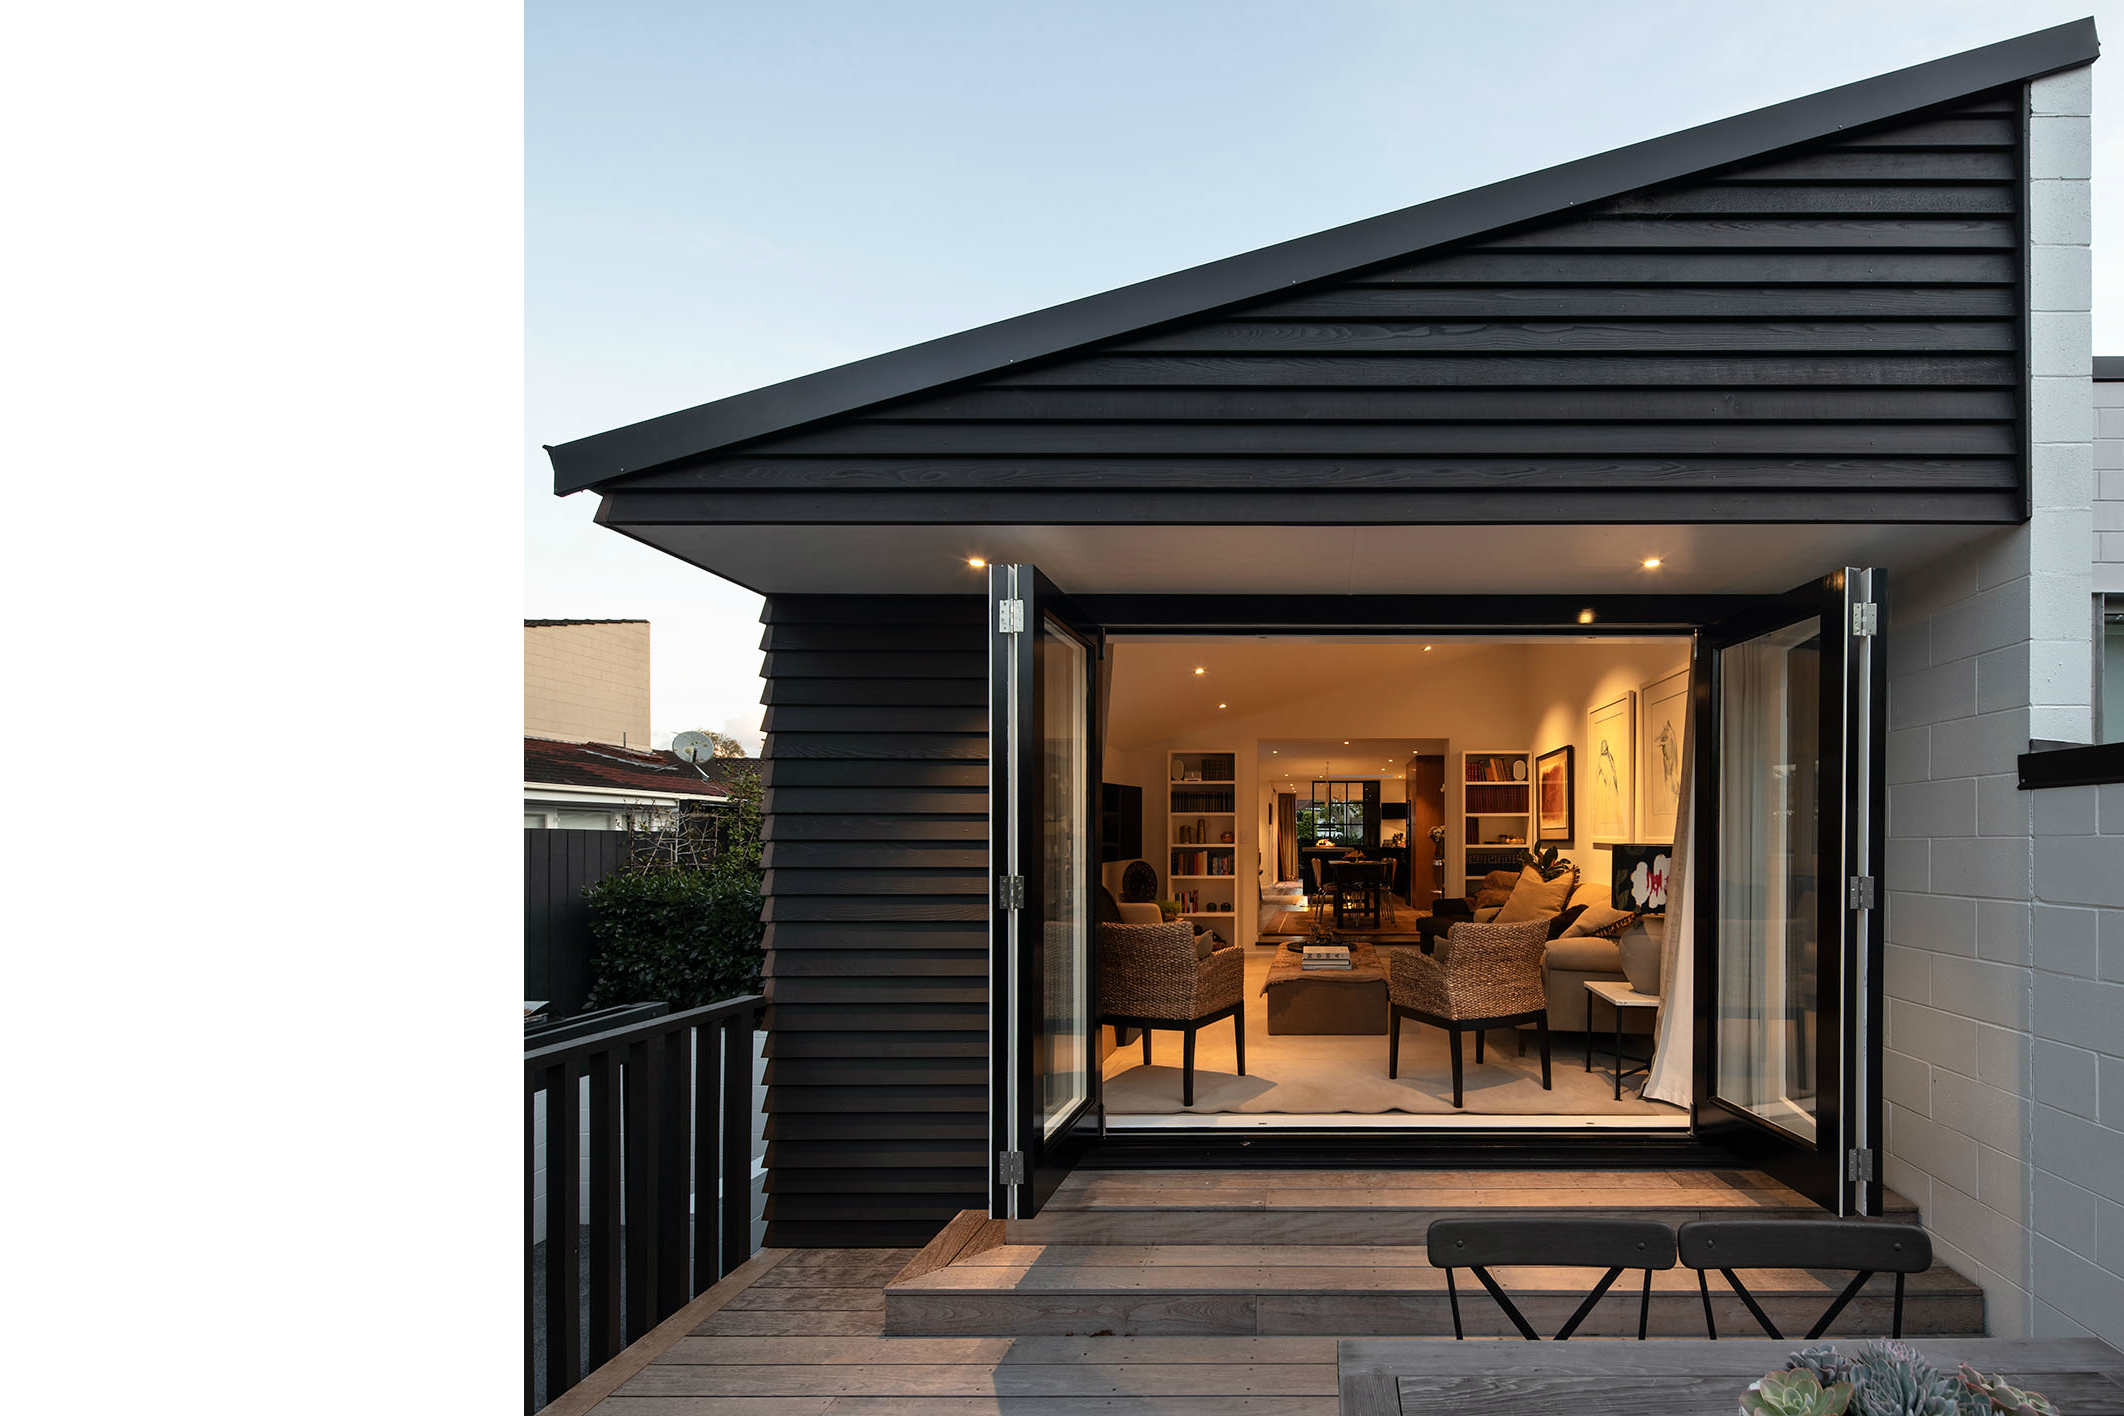 Cedar clad architecture by city architects, Auckland